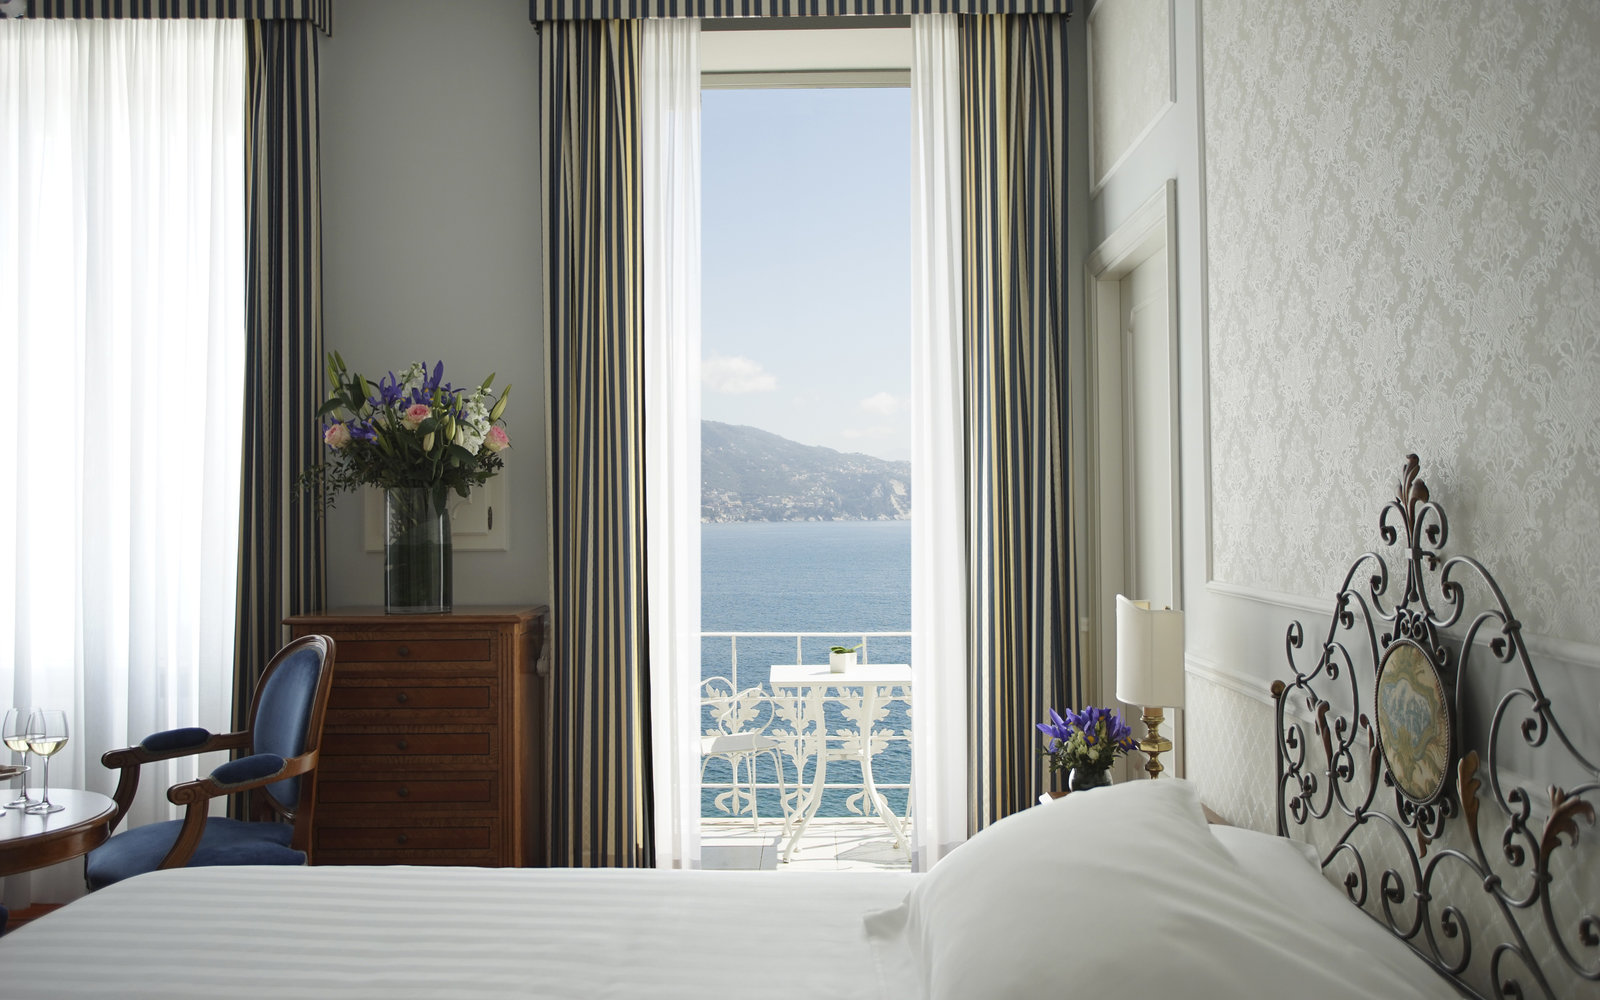 No. 9: Grand Hotel Miramare, Santa Margherita Ligure